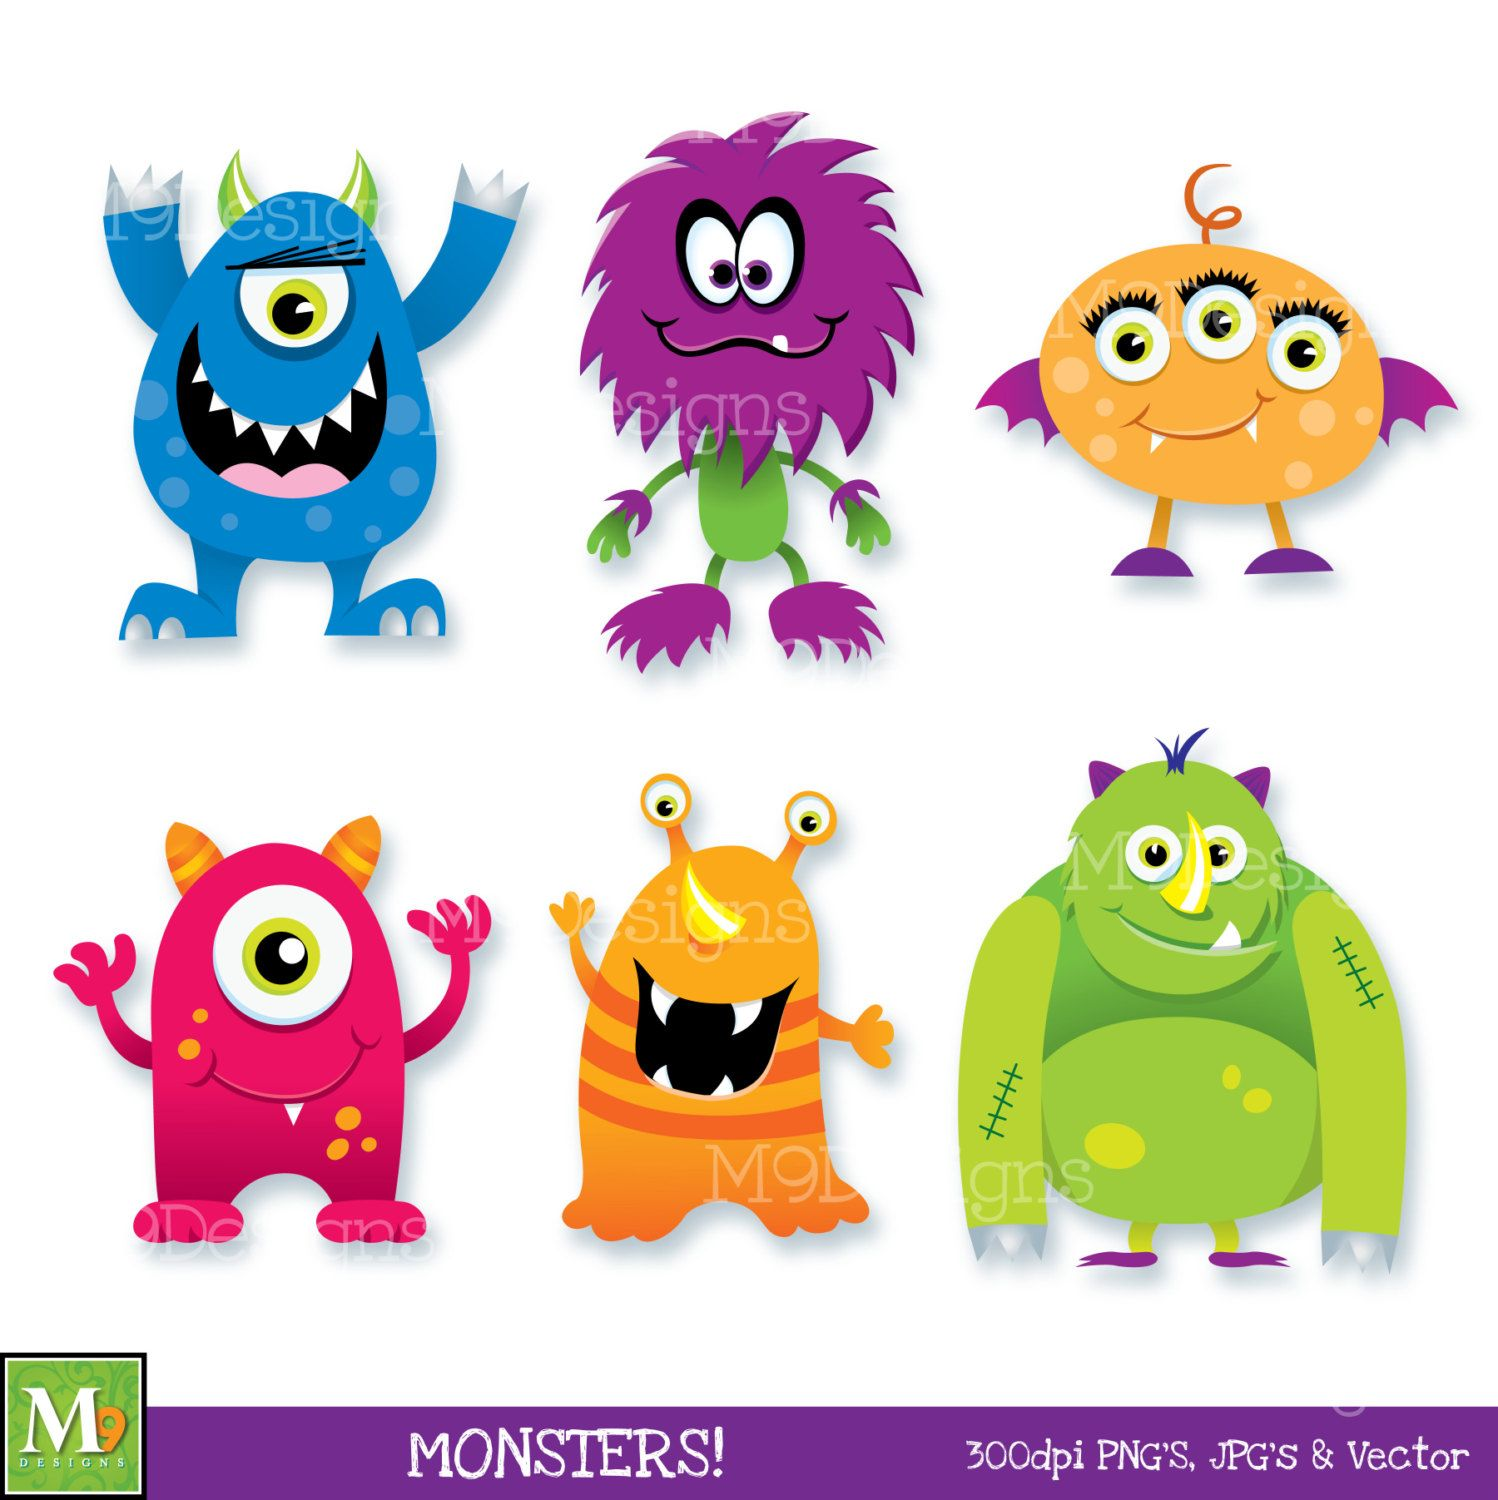 MONSTERS Clip Art Monster Clipart Scary Fun Cute Monsters Vector